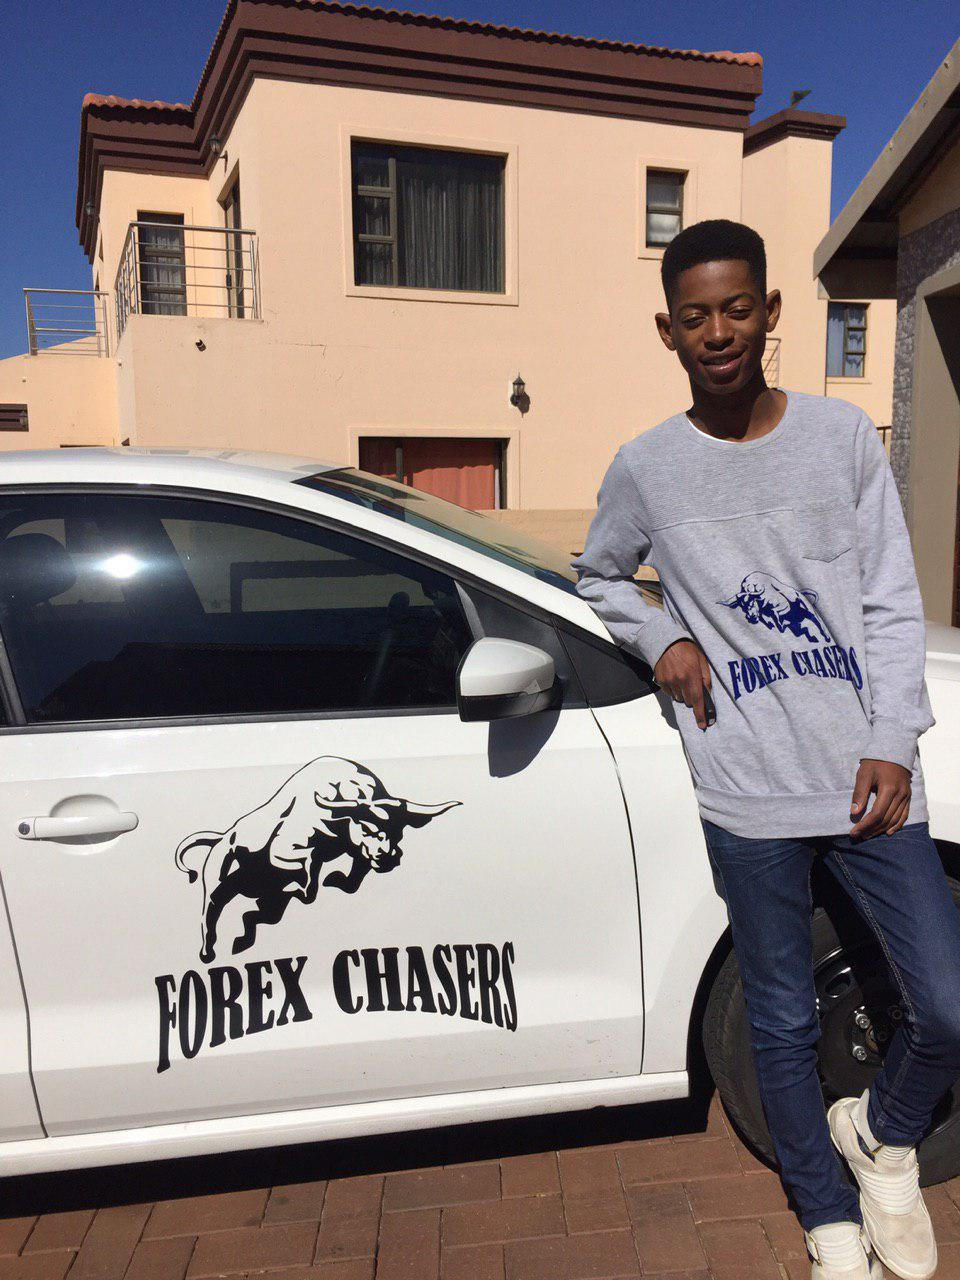 Forex chasers